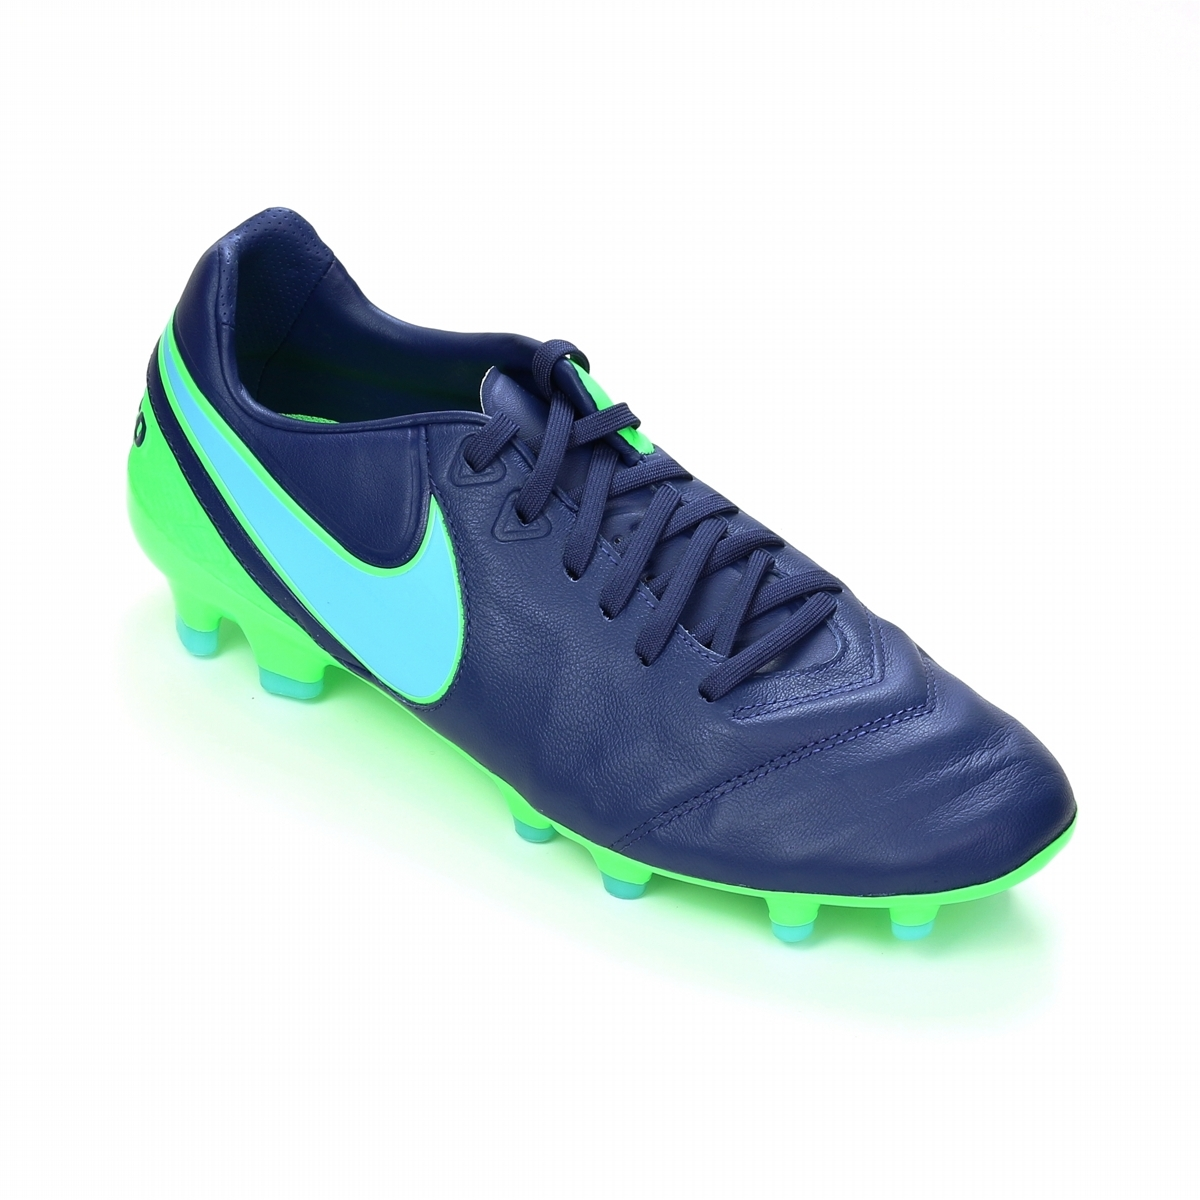 new arrival b9a12 0479a Nike Tiempo Legacy II FG Soccer Cleats ...